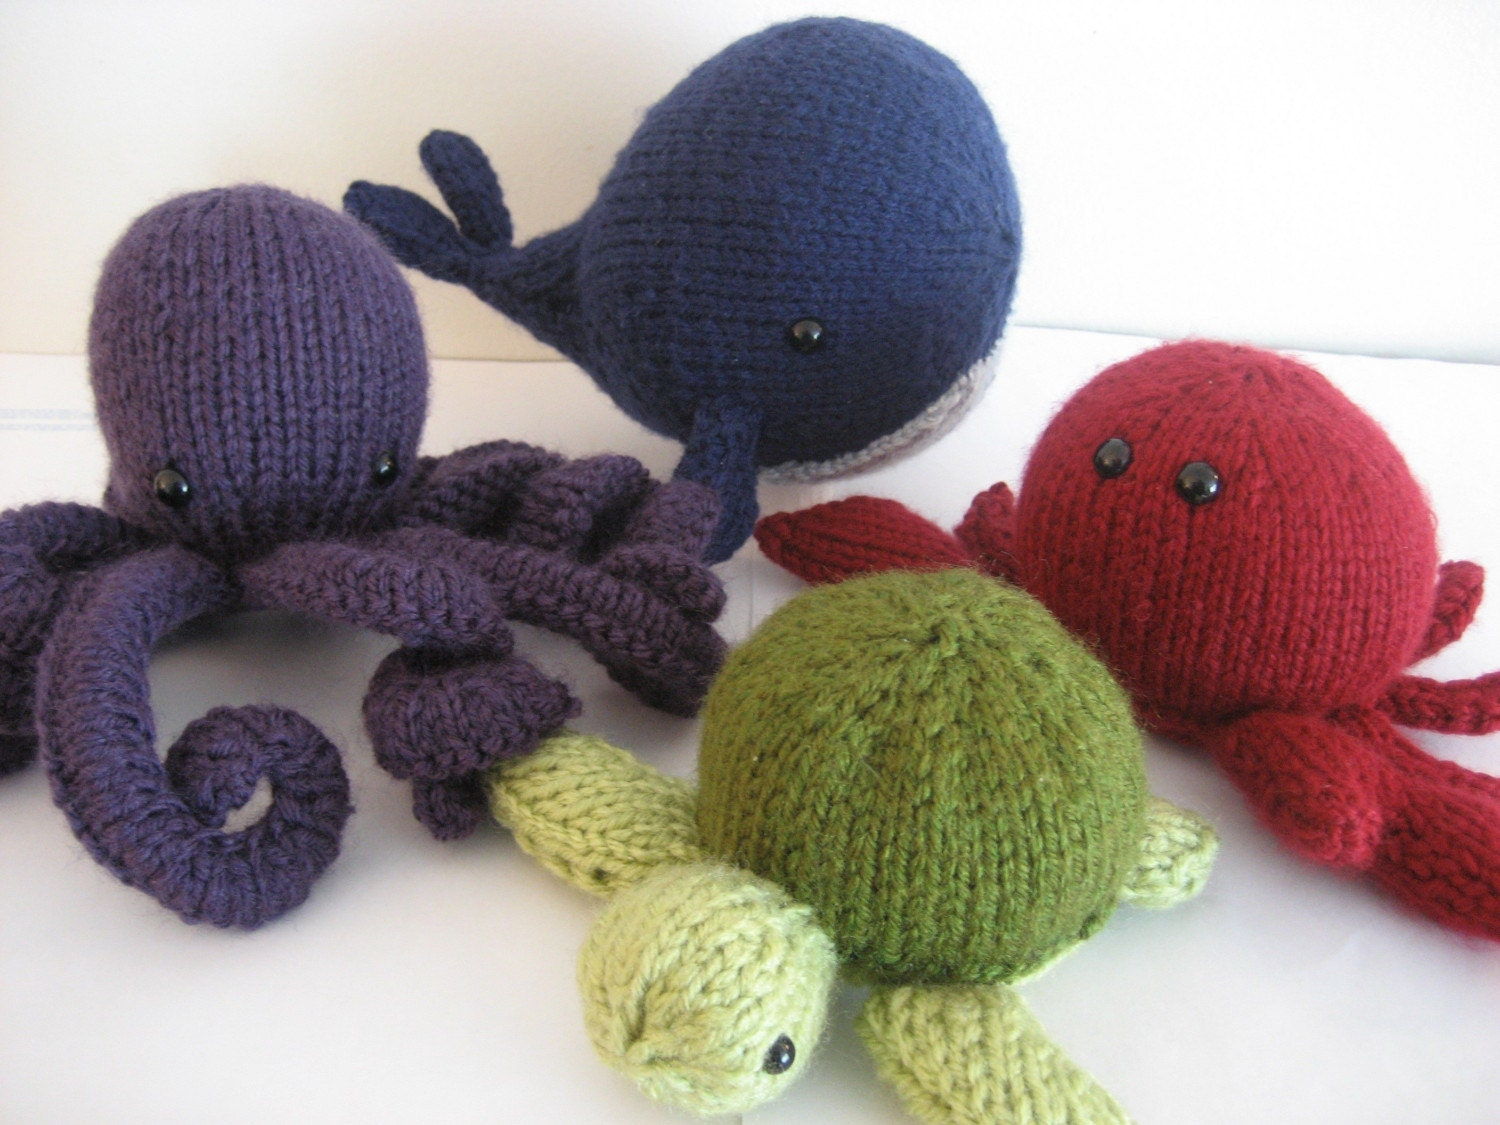 How To Knit Amigurumi For Beginners : PDF Knit Amigurumi Sea Creatures pattern by Amy Gaines